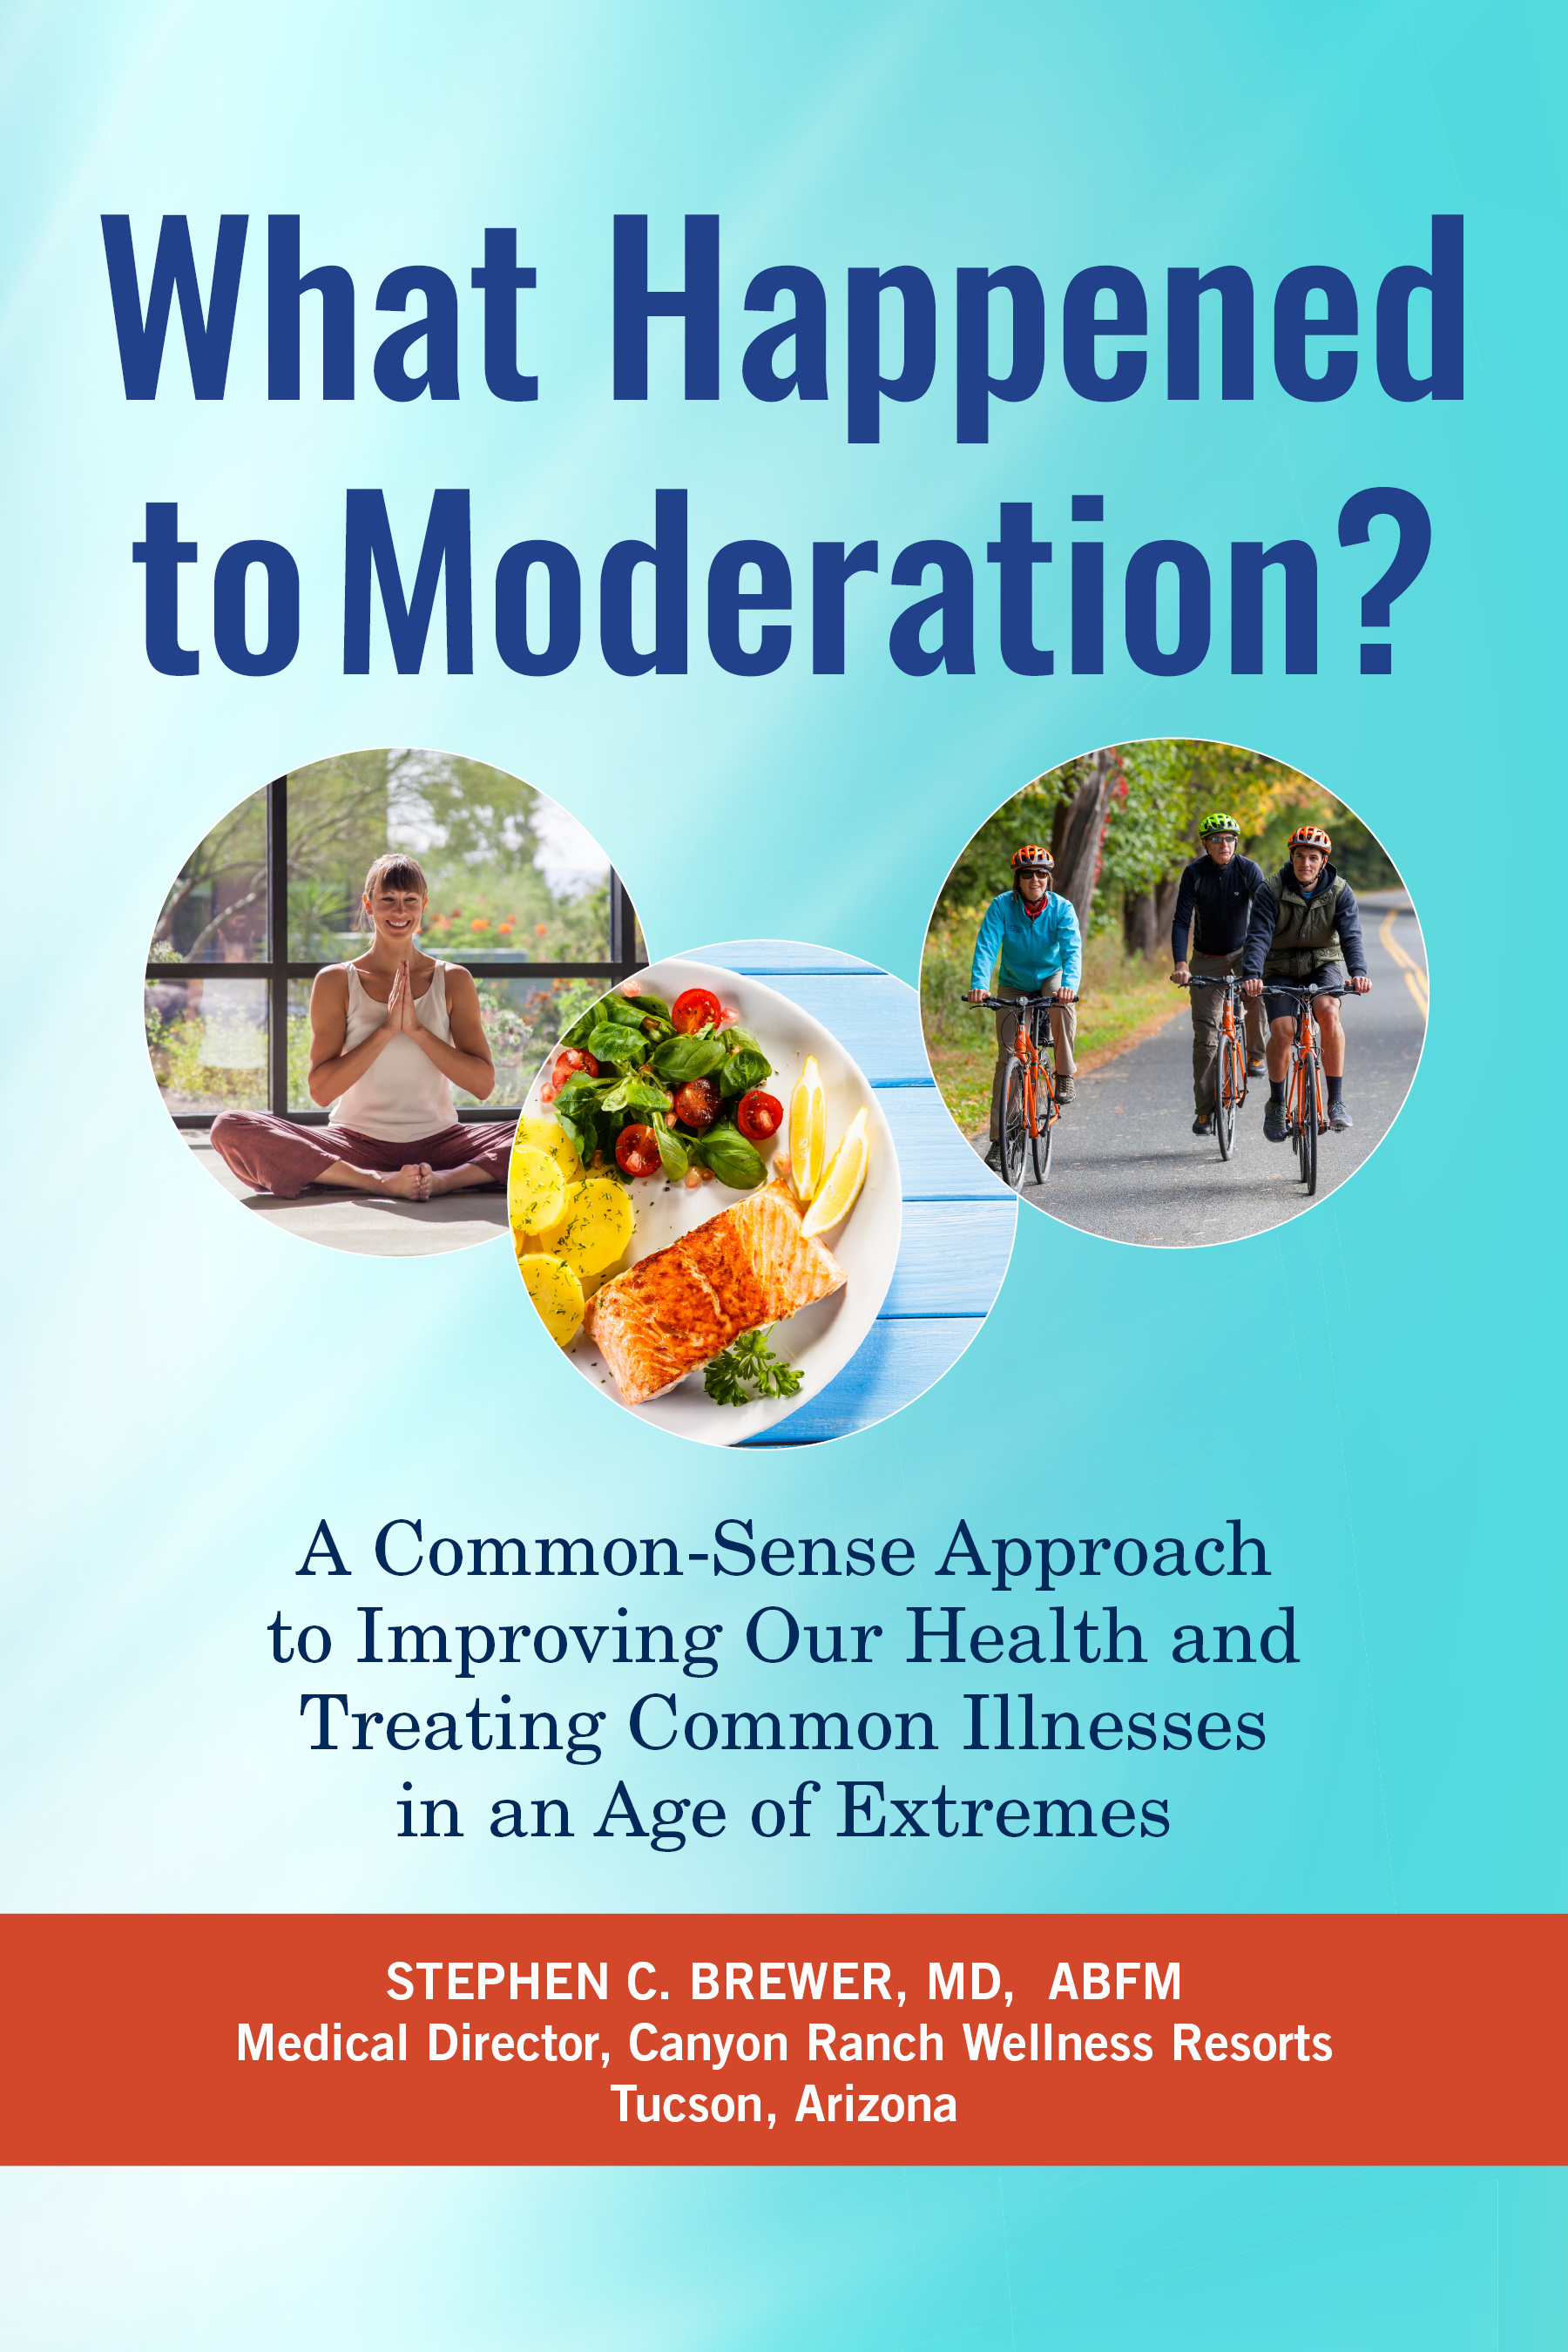 What Happened to Moderation?